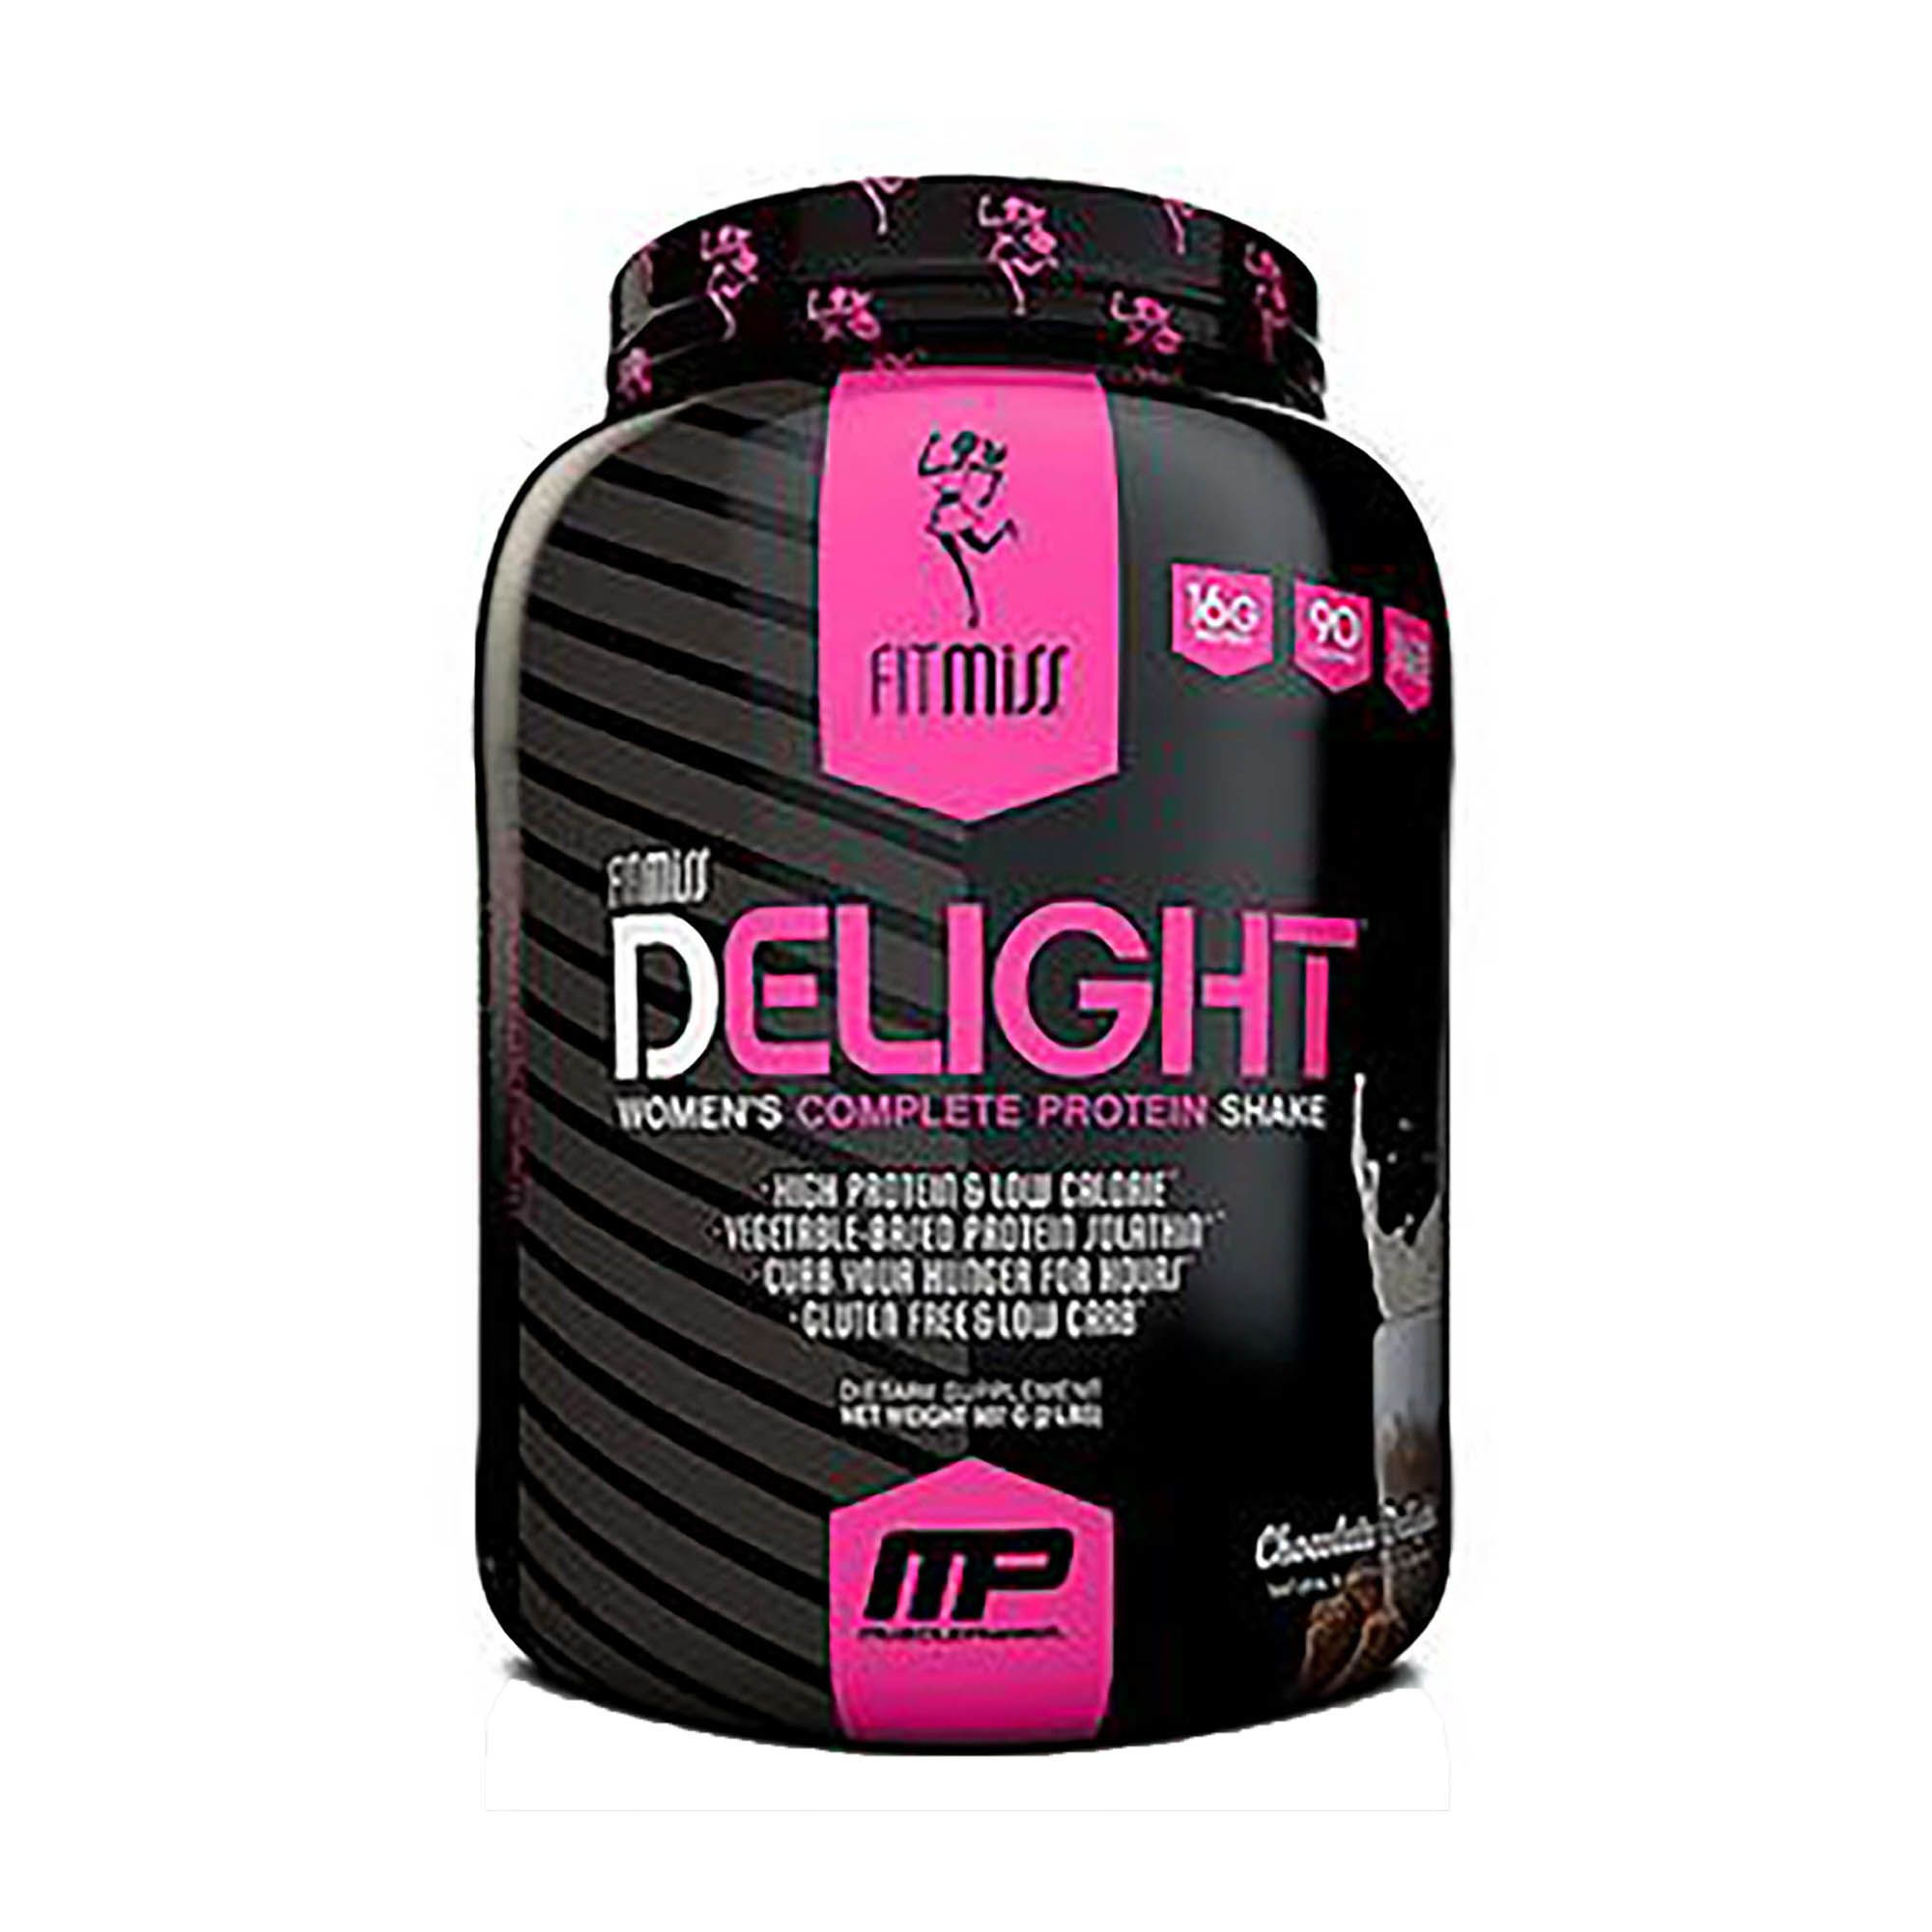 MusclePharm® FitMiss™ DELIGHT™ Womens Complete Protein